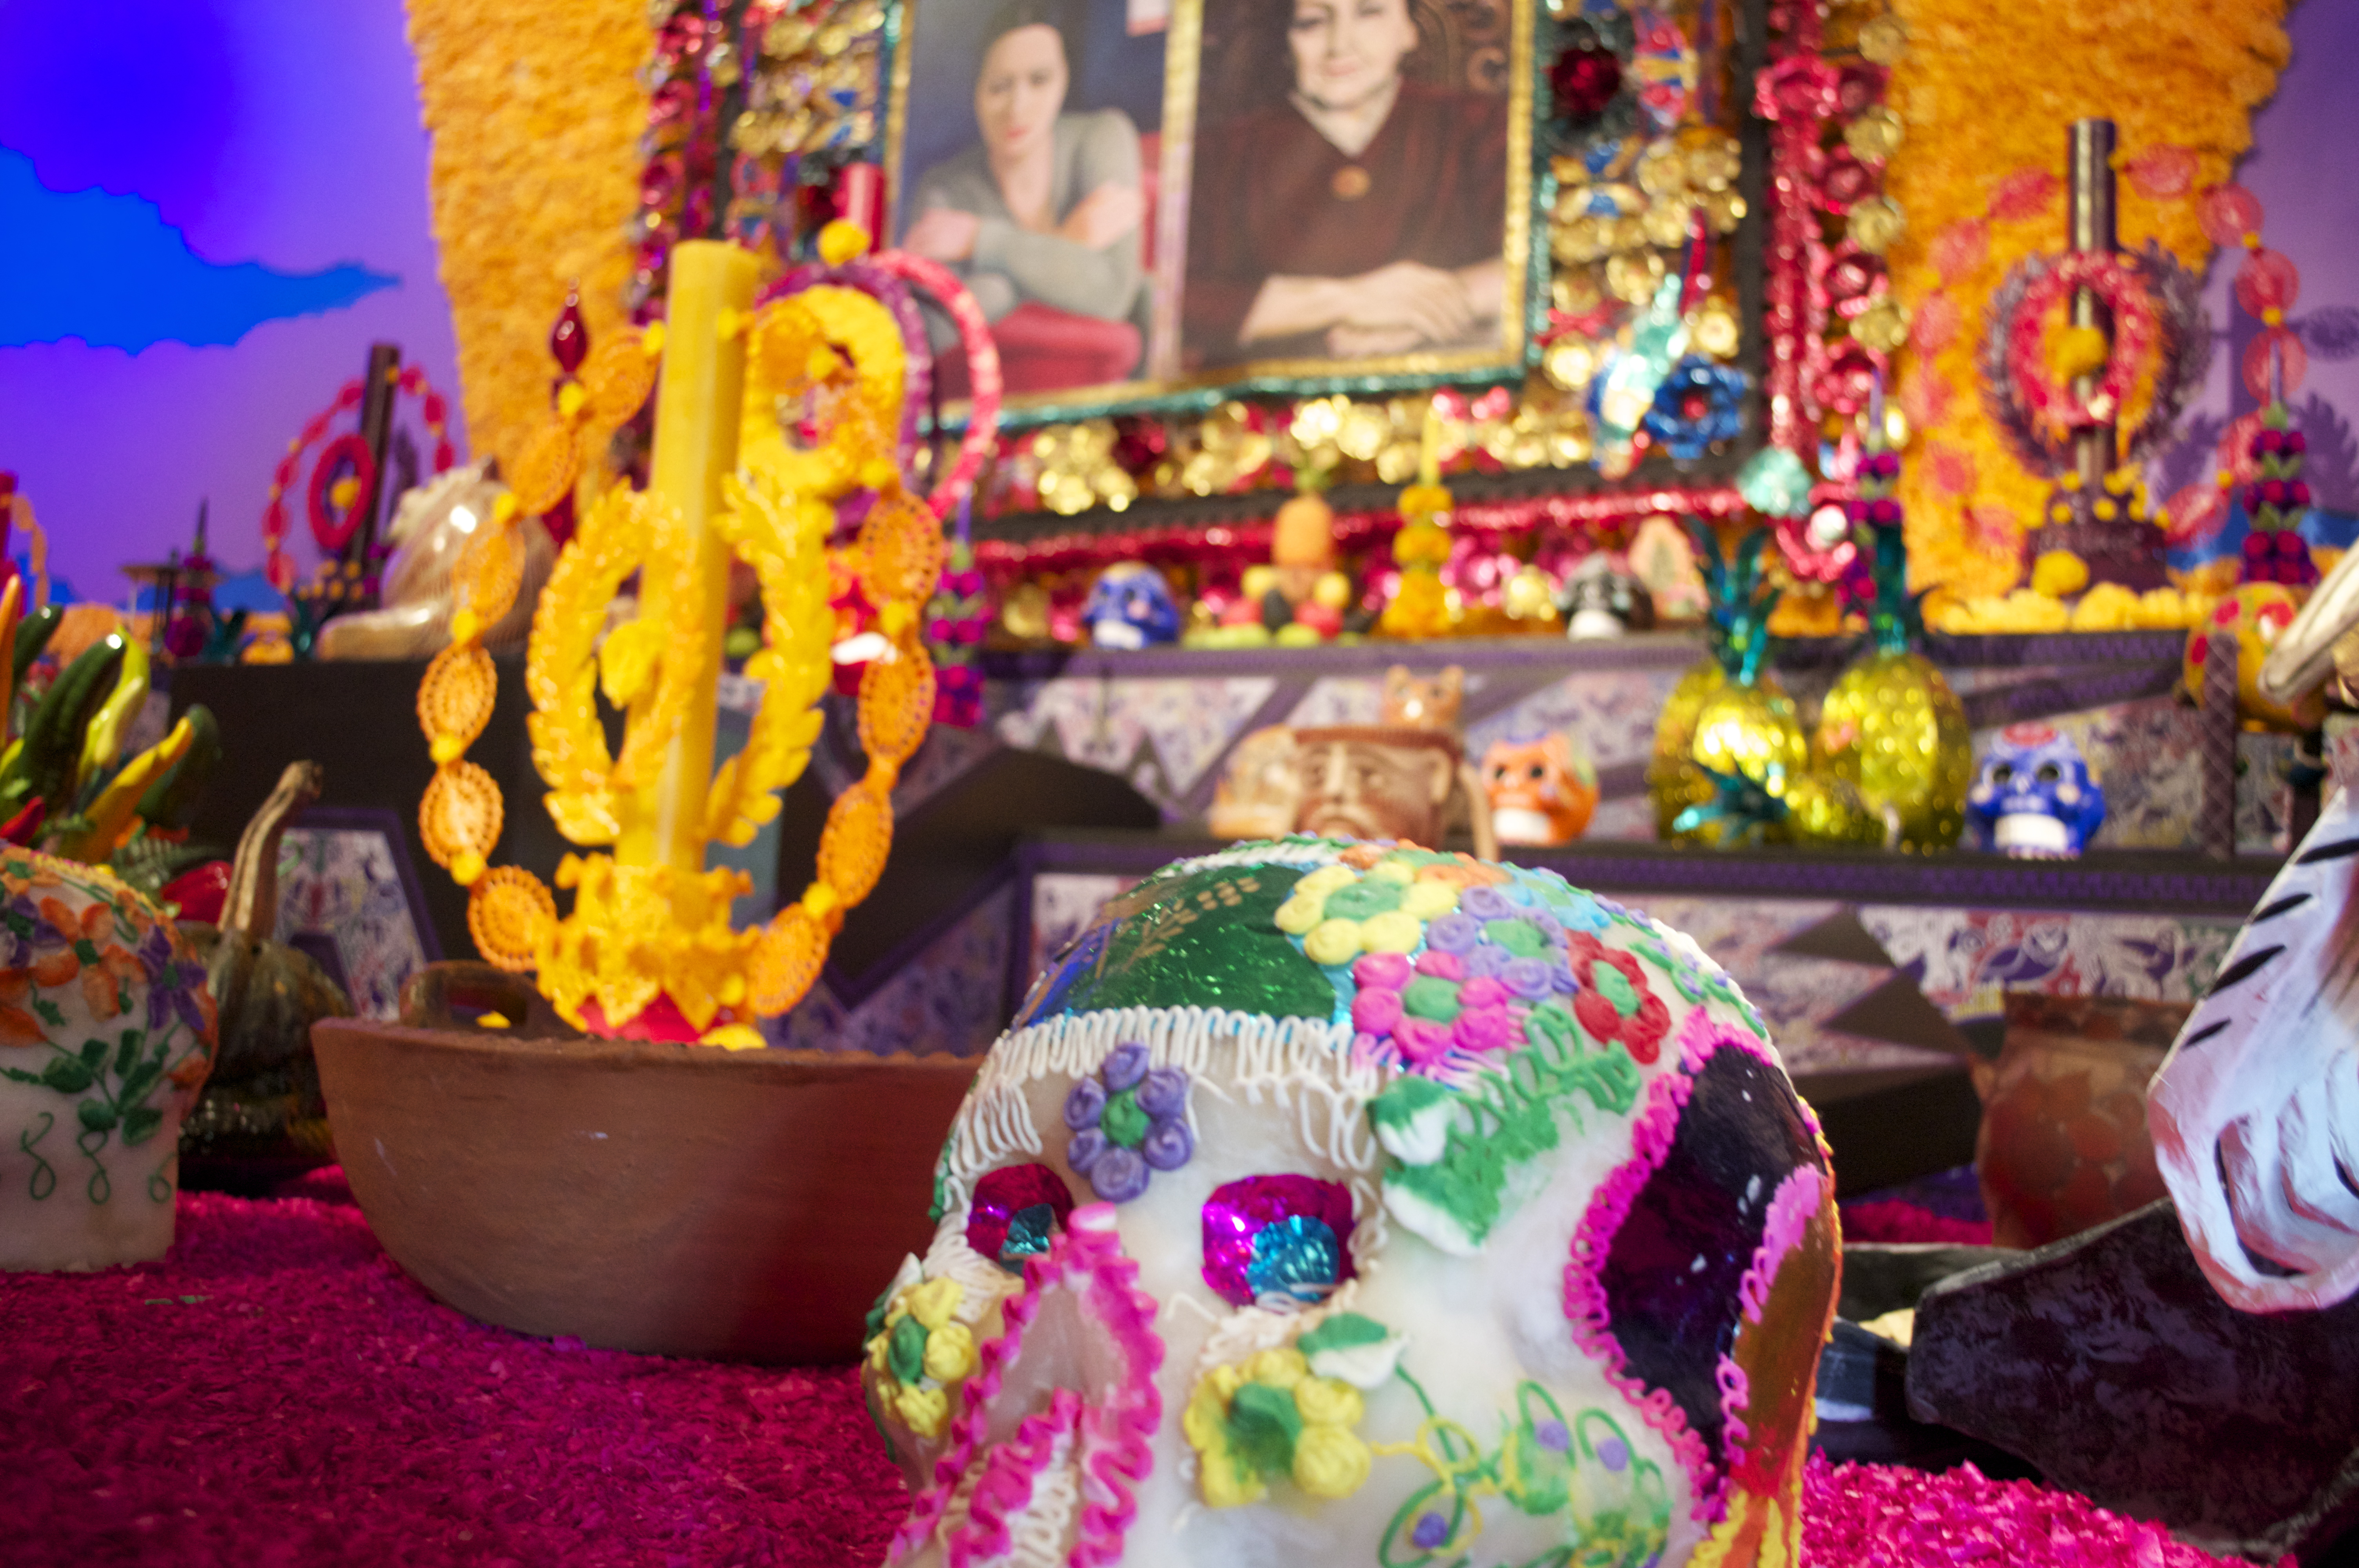 Dia_de_muertos_Candy_skull_and_altar